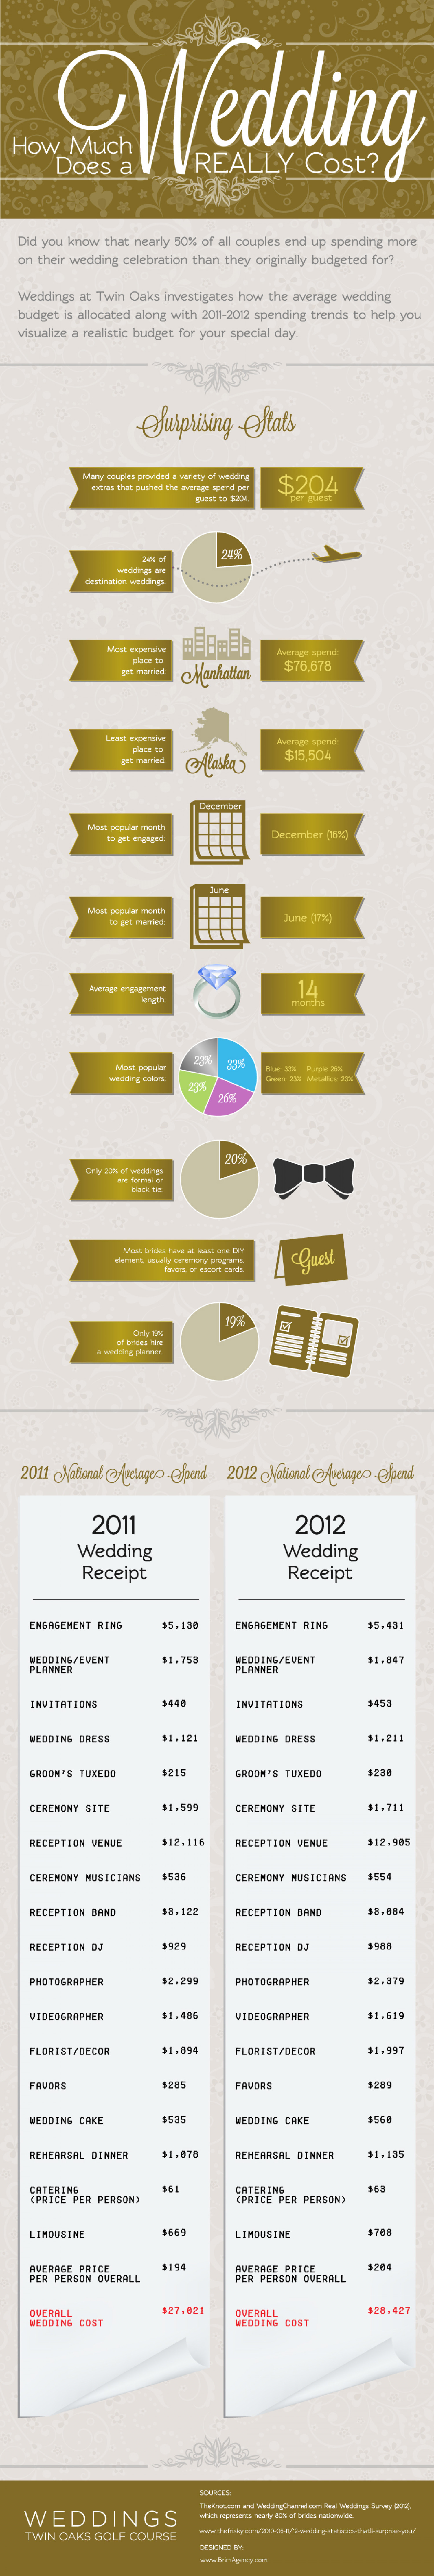 What Does a Wedding Cost?  Infographic